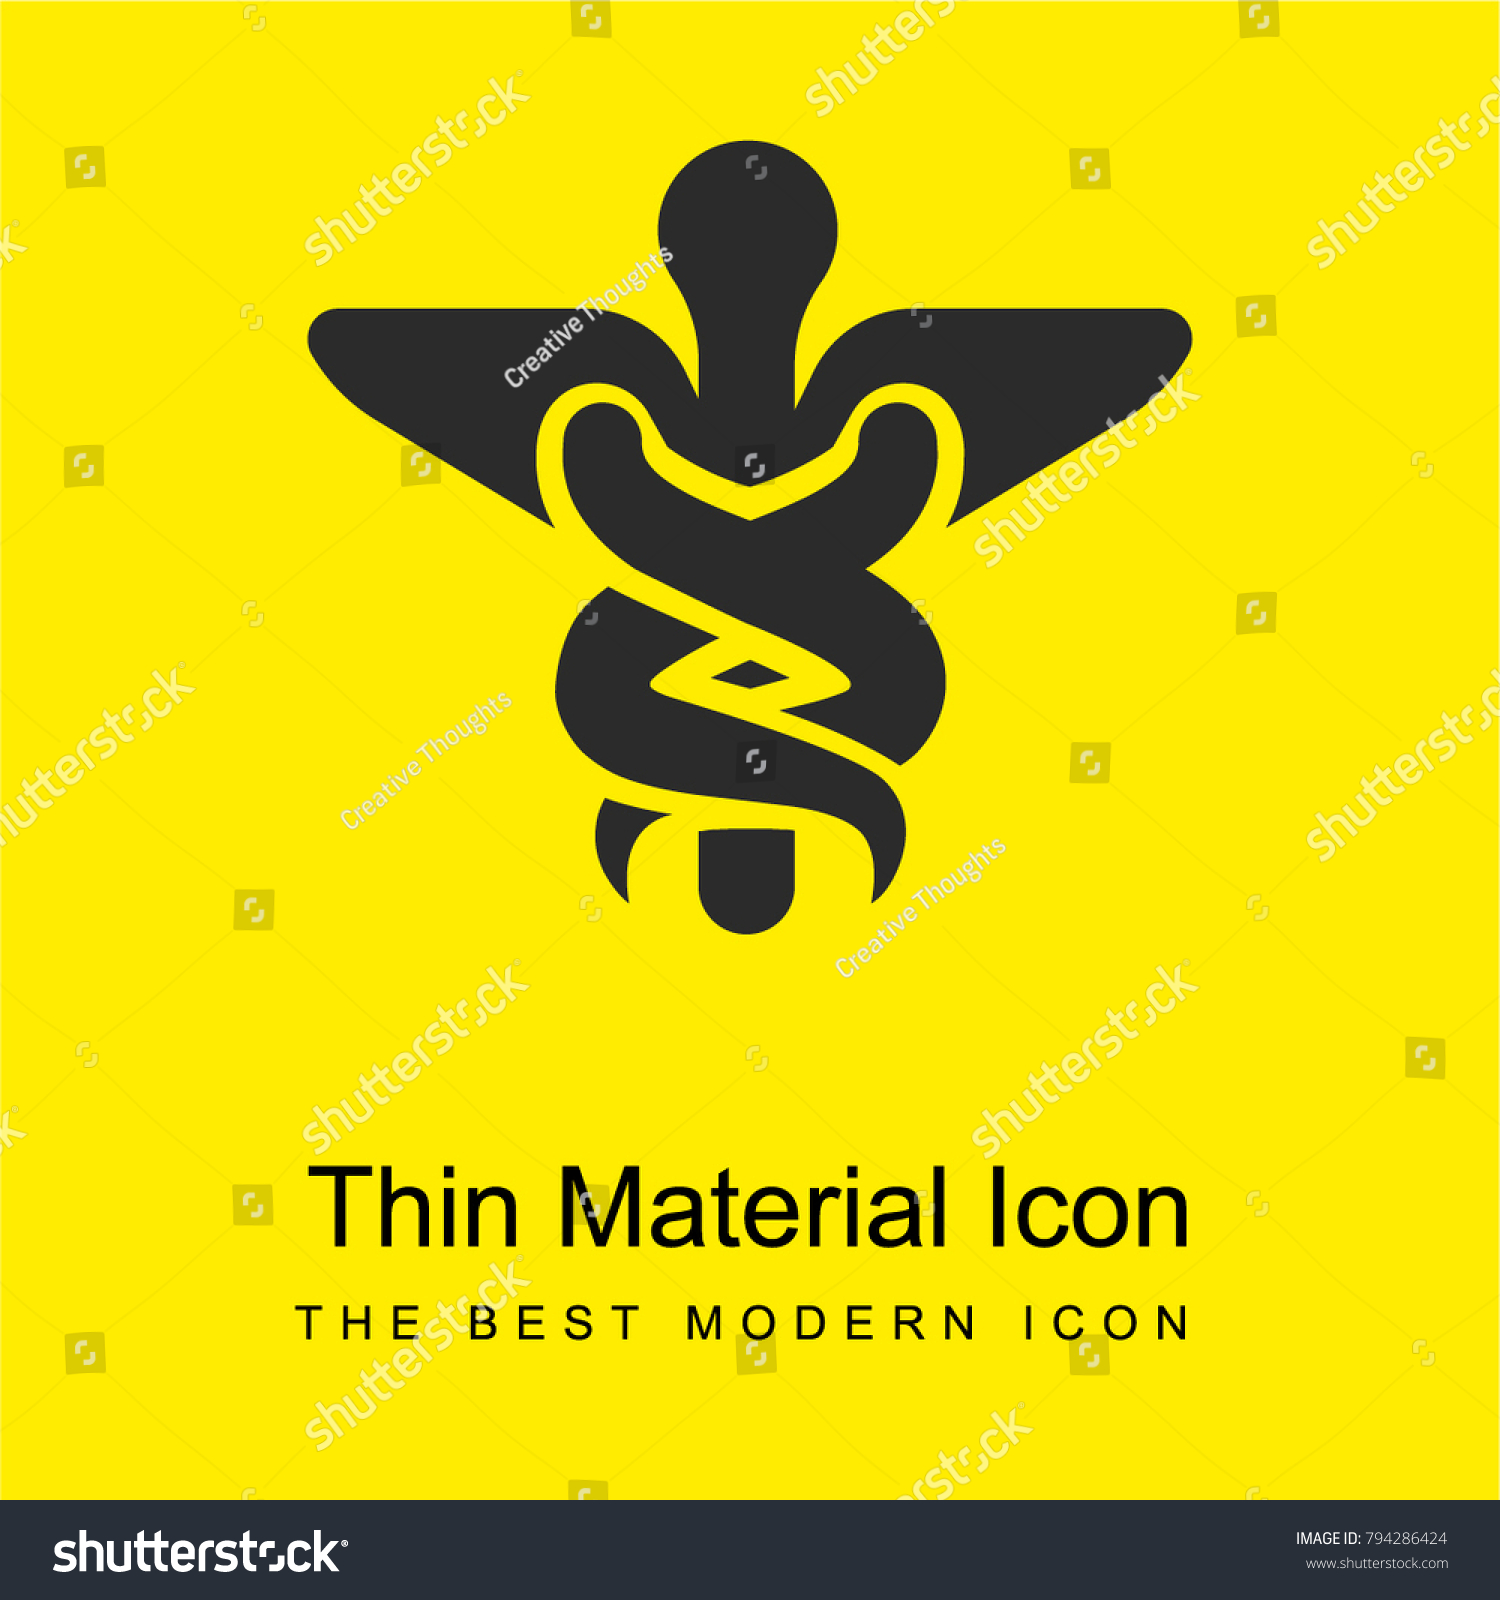 Caduceus medical symbol two ascending serpents stock vector caduceus medical symbol of two ascending serpents on a cane with wings bright yellow material minimal buycottarizona Image collections